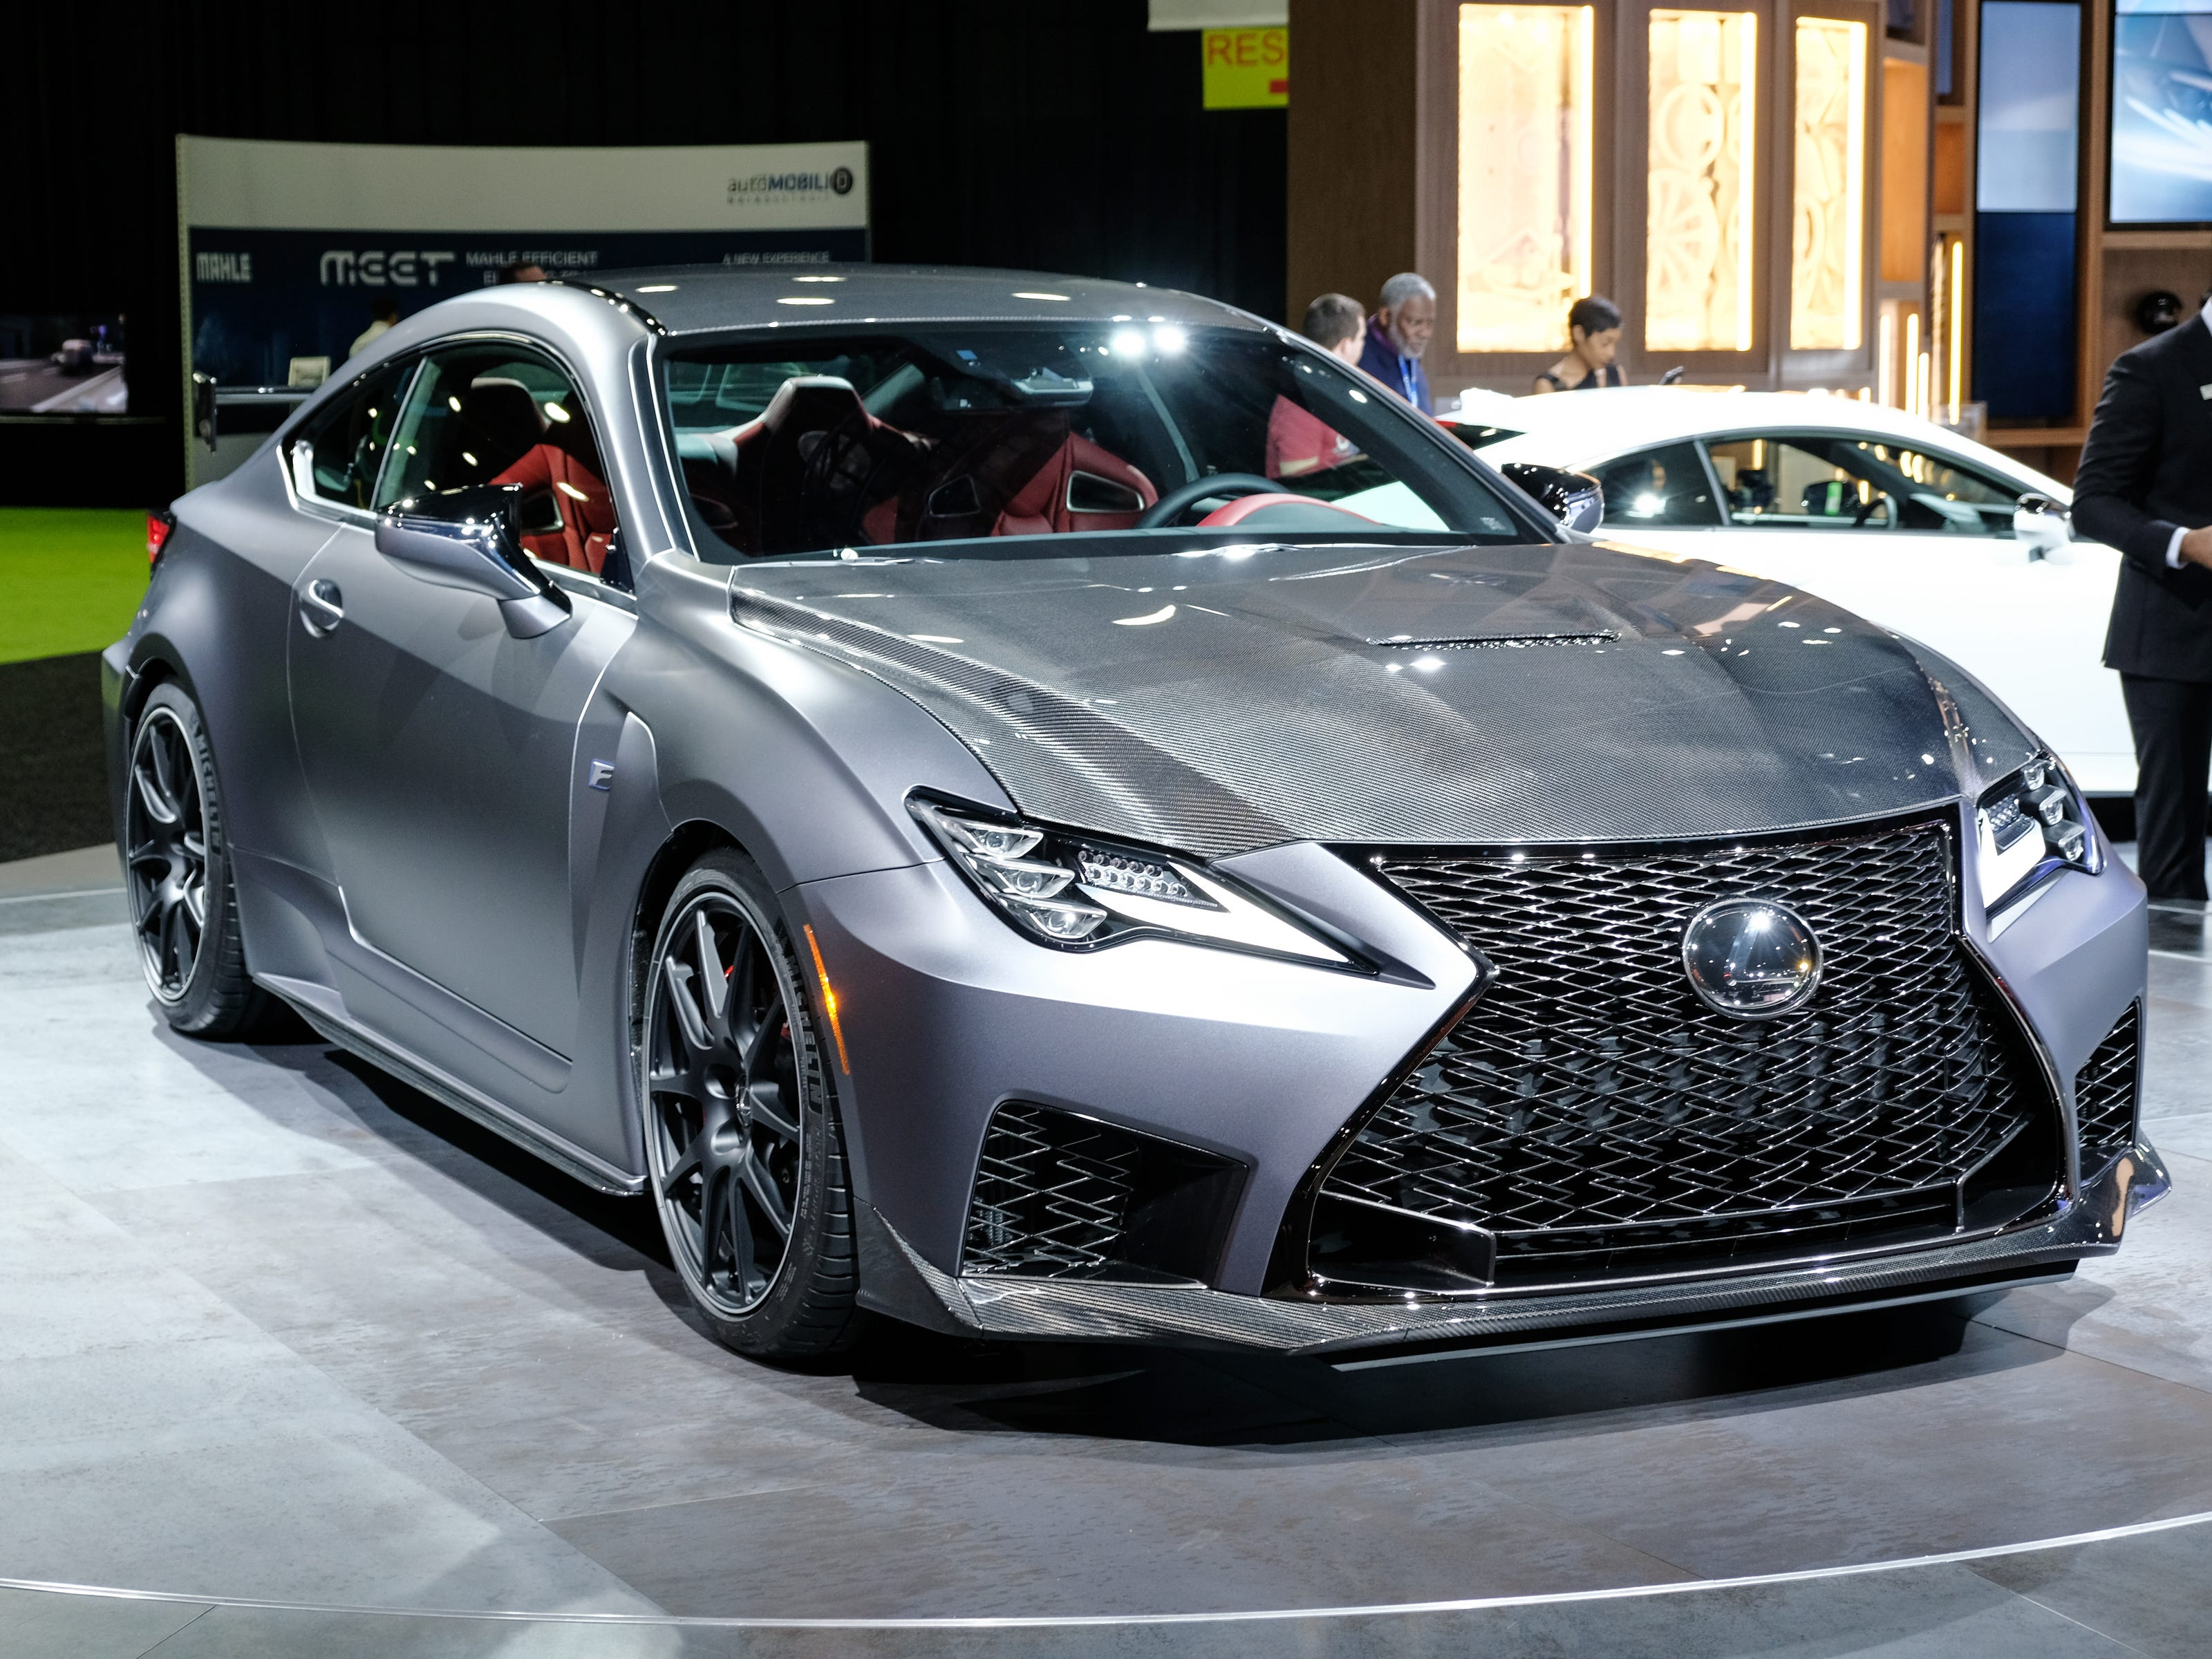 A 2020 Lexus RC F sits on the stage during the 2019 North American International Auto Show held at Cobo Center in downtown Detroit on Tuesday, Jan. 15, 2019.  (Via OlyDrop)